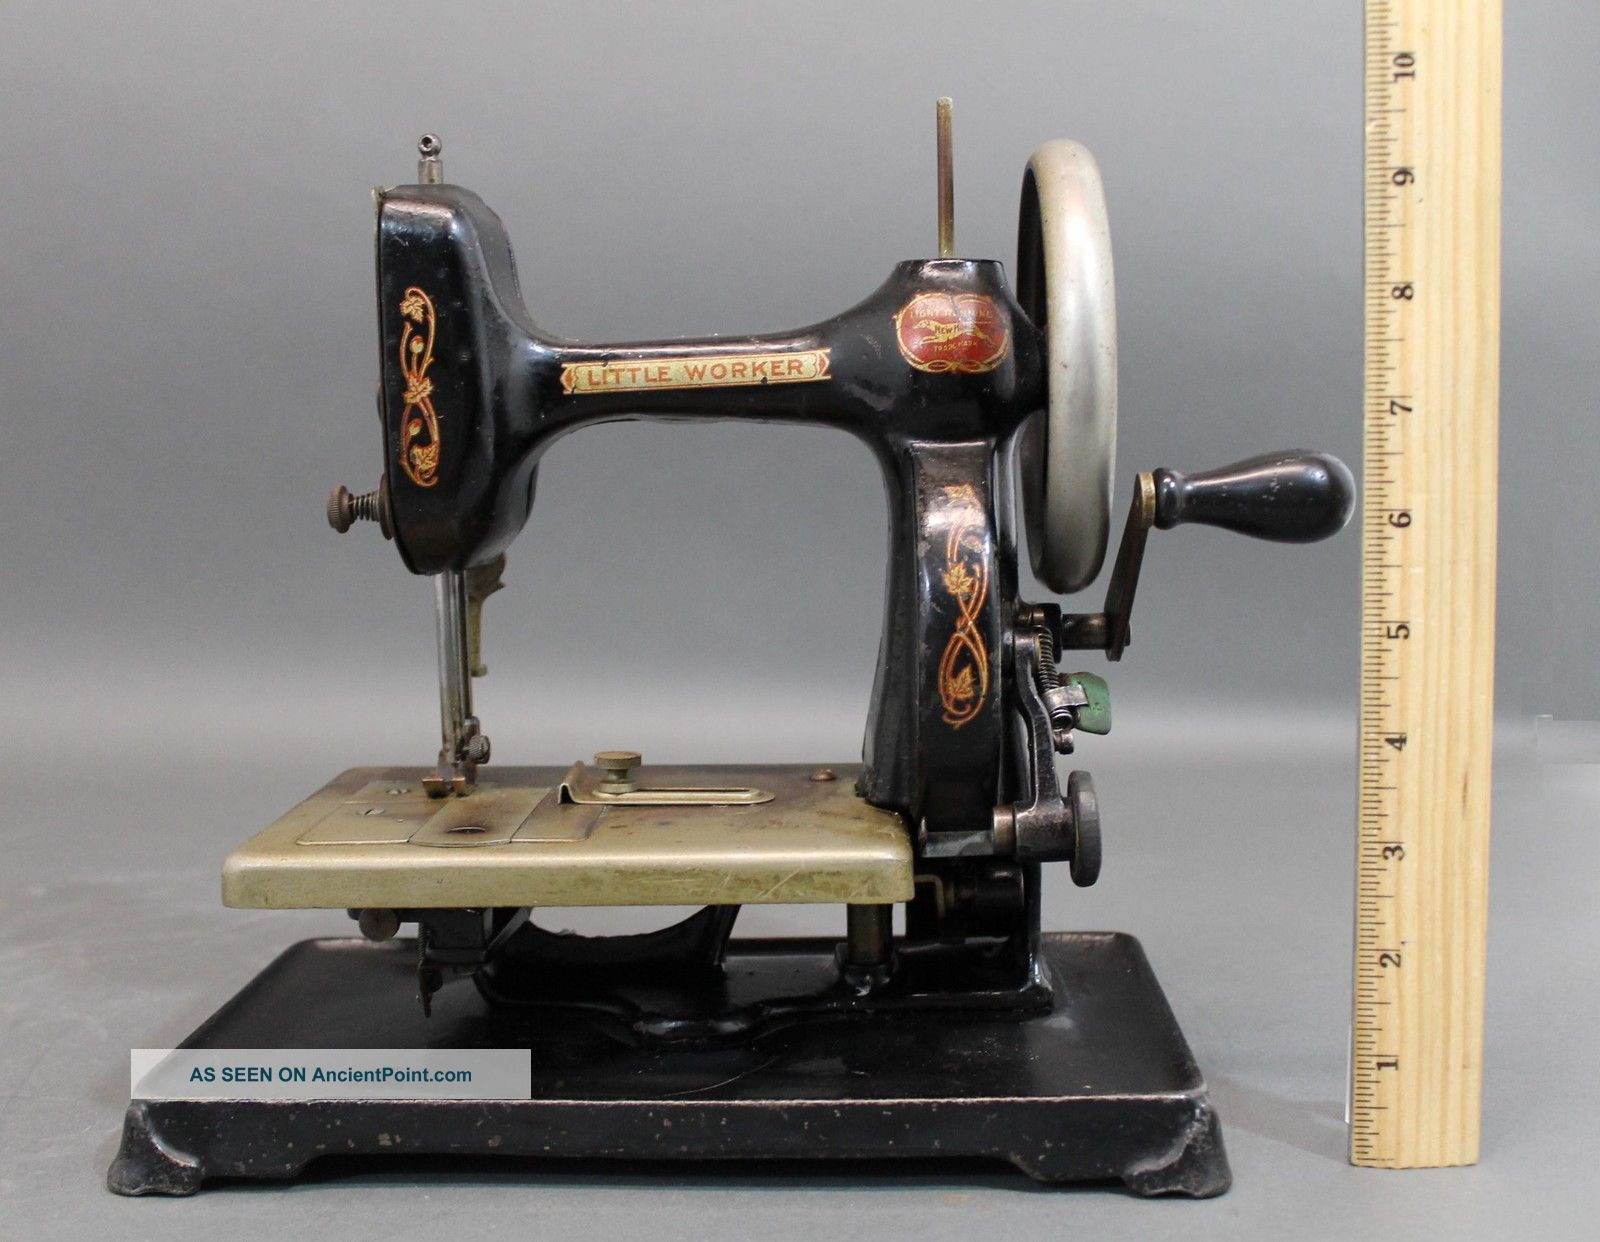 Antique Patd 1911,  Lttle Worker,  Home,  Cast Iron Sewing Machine,  Nr Sewing Machines photo